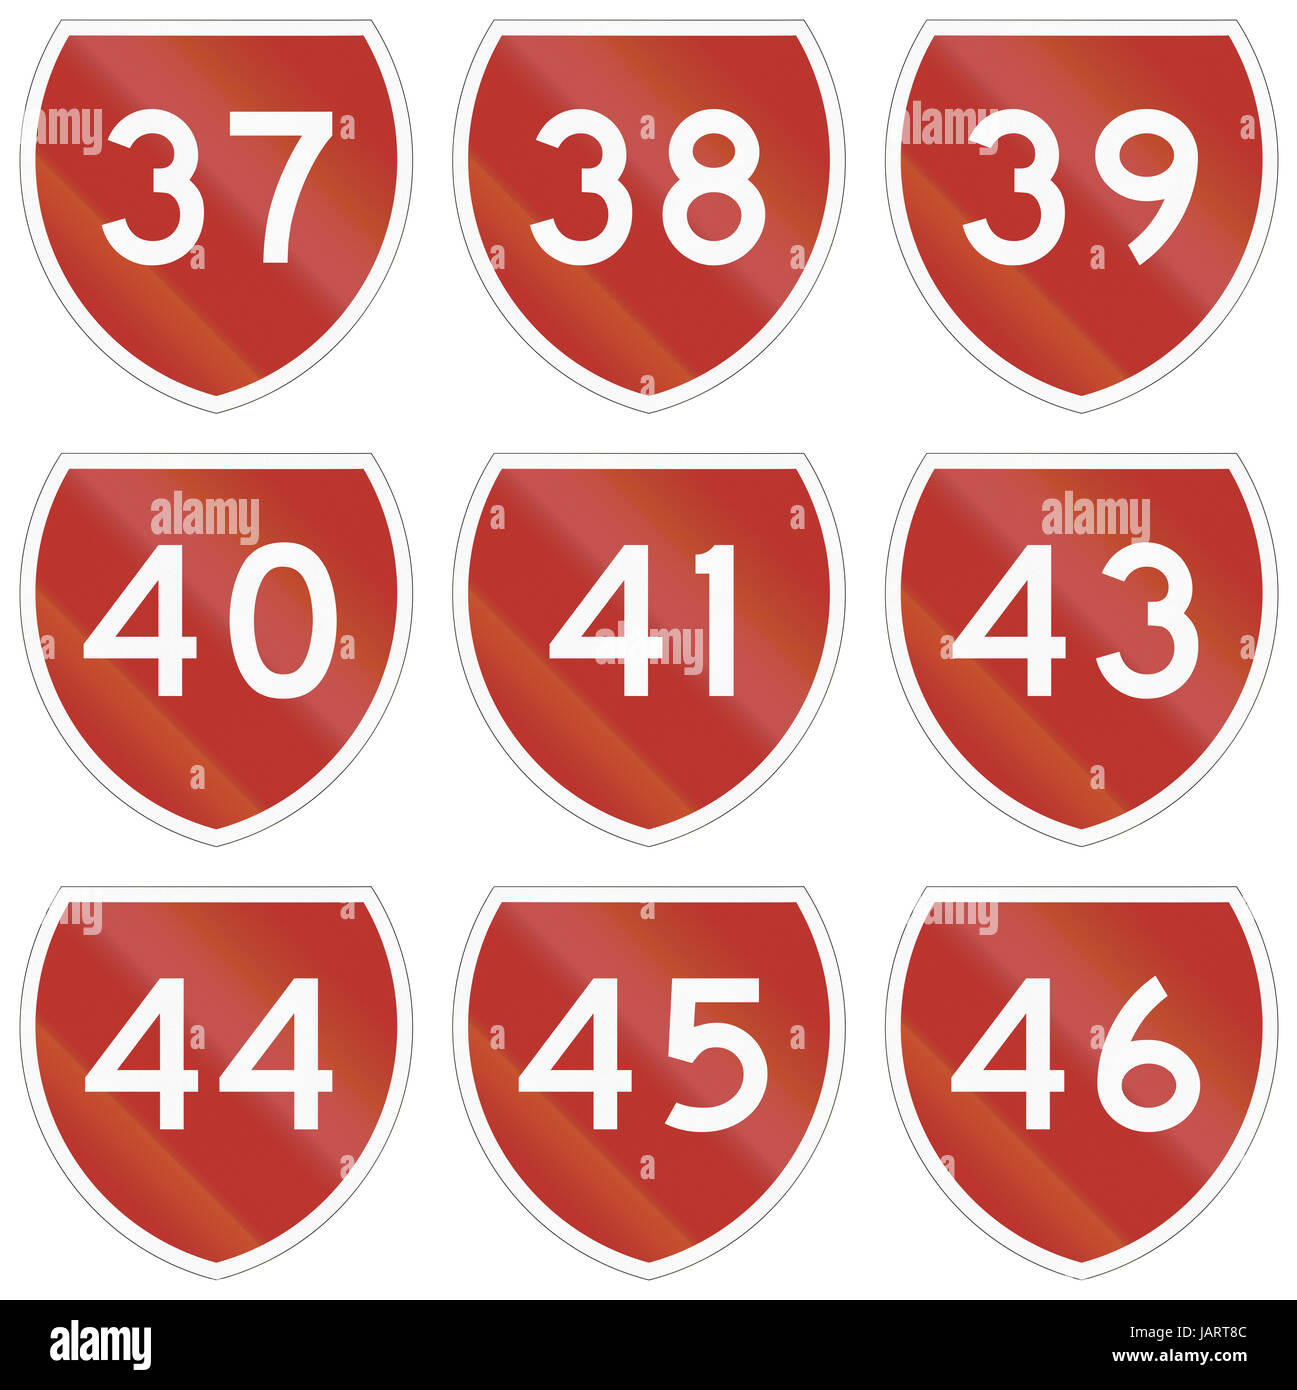 Collection of state highway shields in New Zealand. - Stock Image